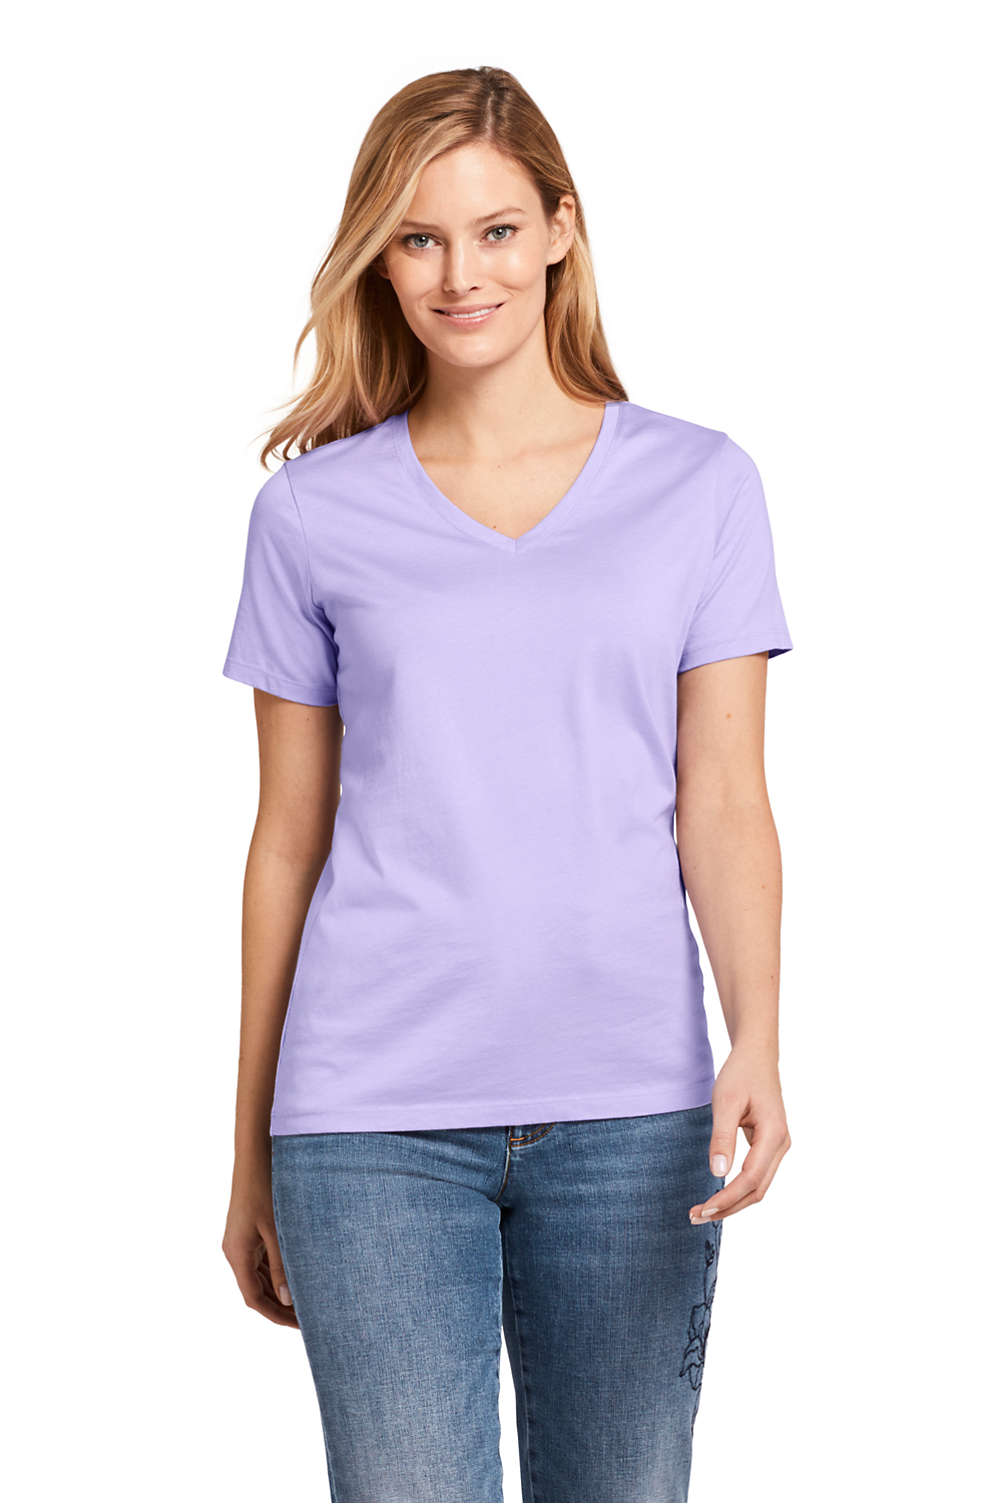 Women s Supima Cotton Short Sleeve T-shirt - Relaxed V-neck from ... 89a58cad7